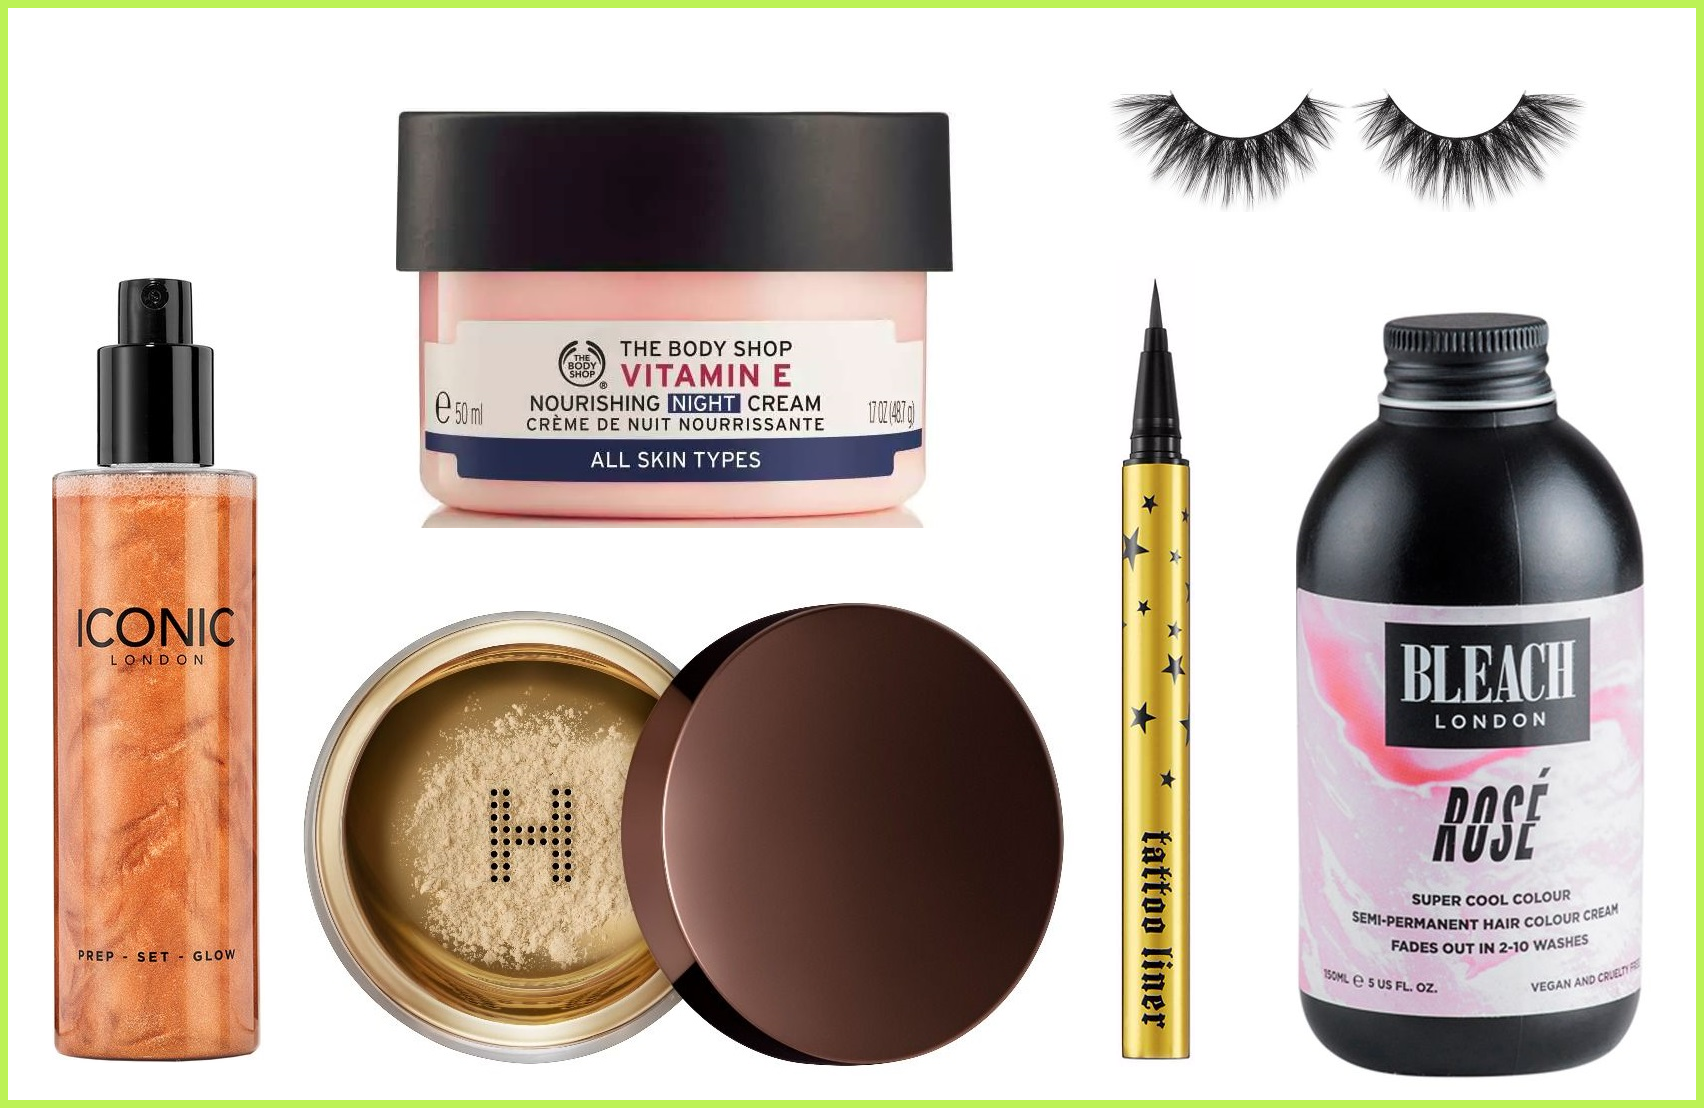 20 of the best vegan beauty products available in the UK